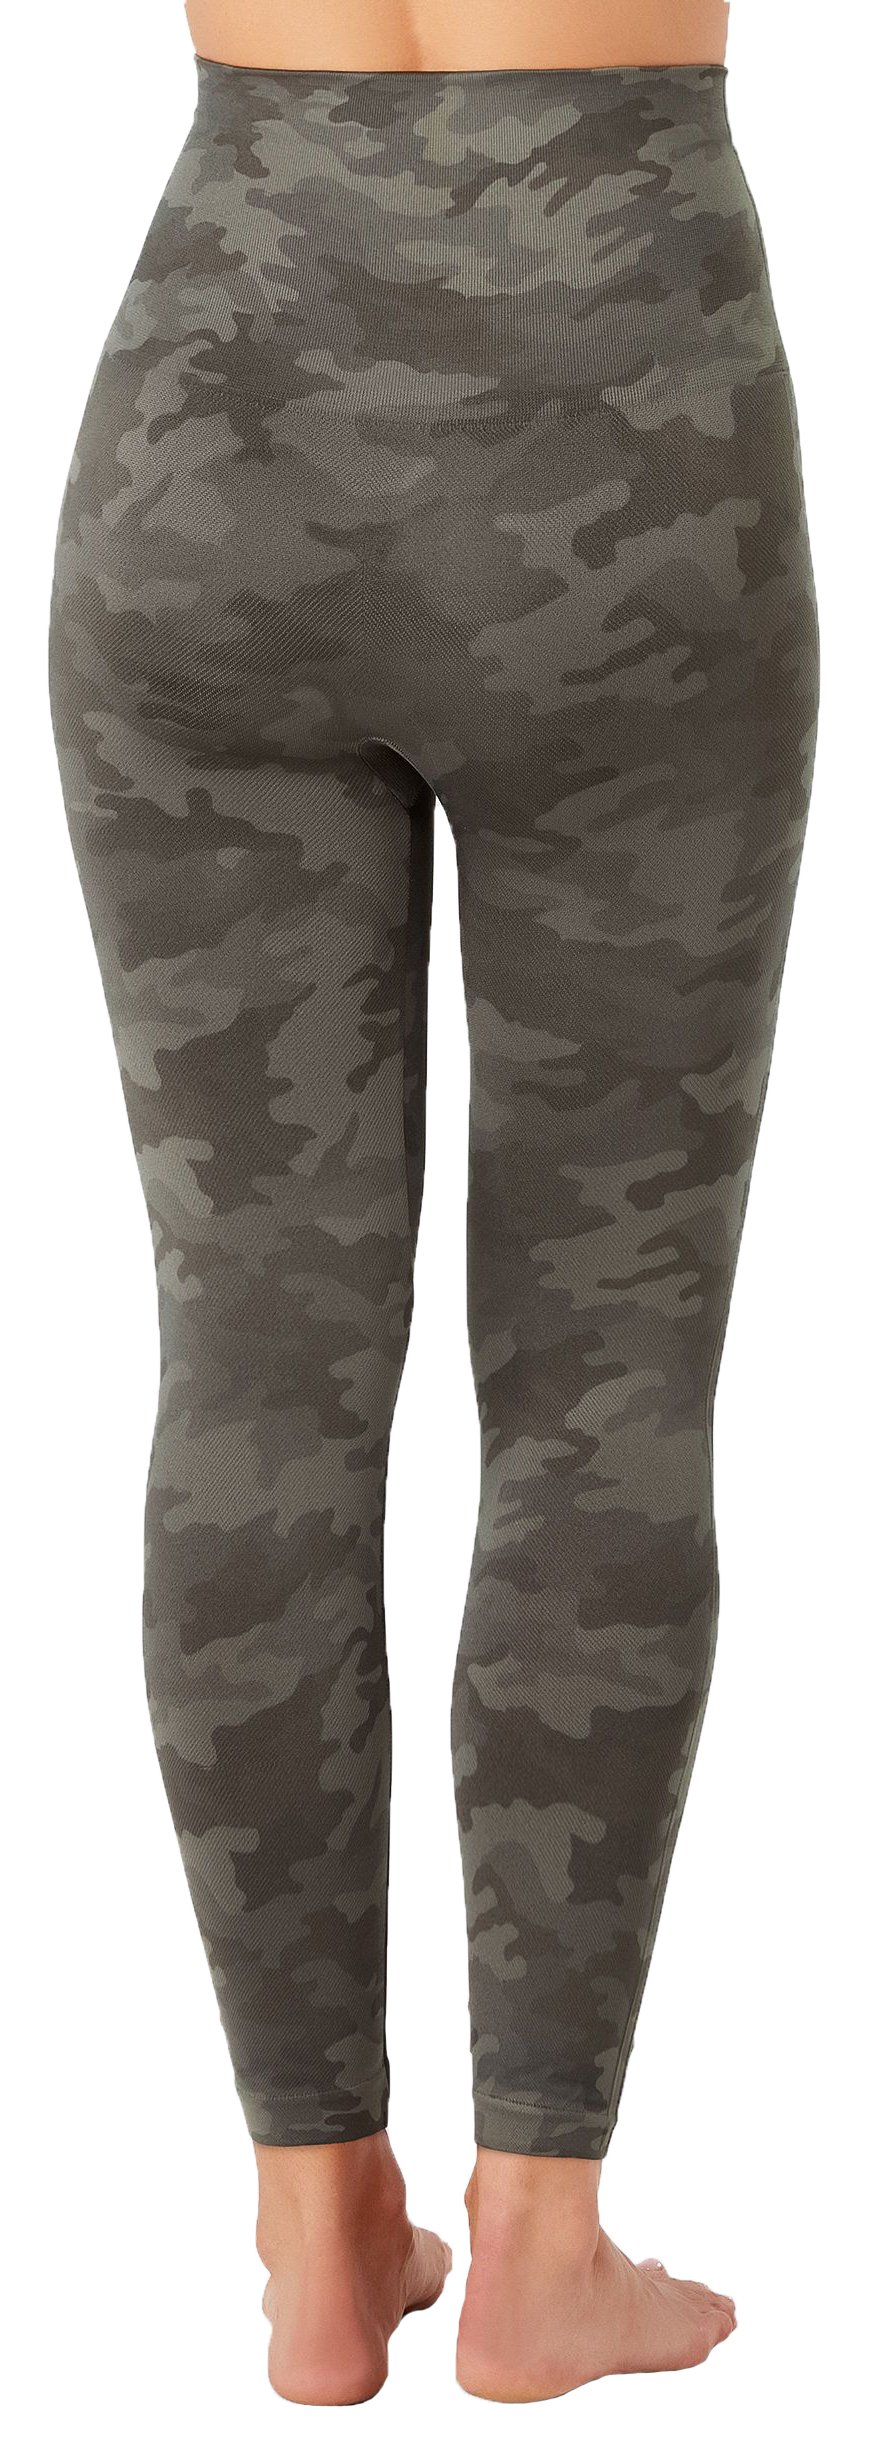 SPANX Look At Me Now Cropped Seamless Leggings (20099r), Sage Camo, XS by SPANX (Image #3)